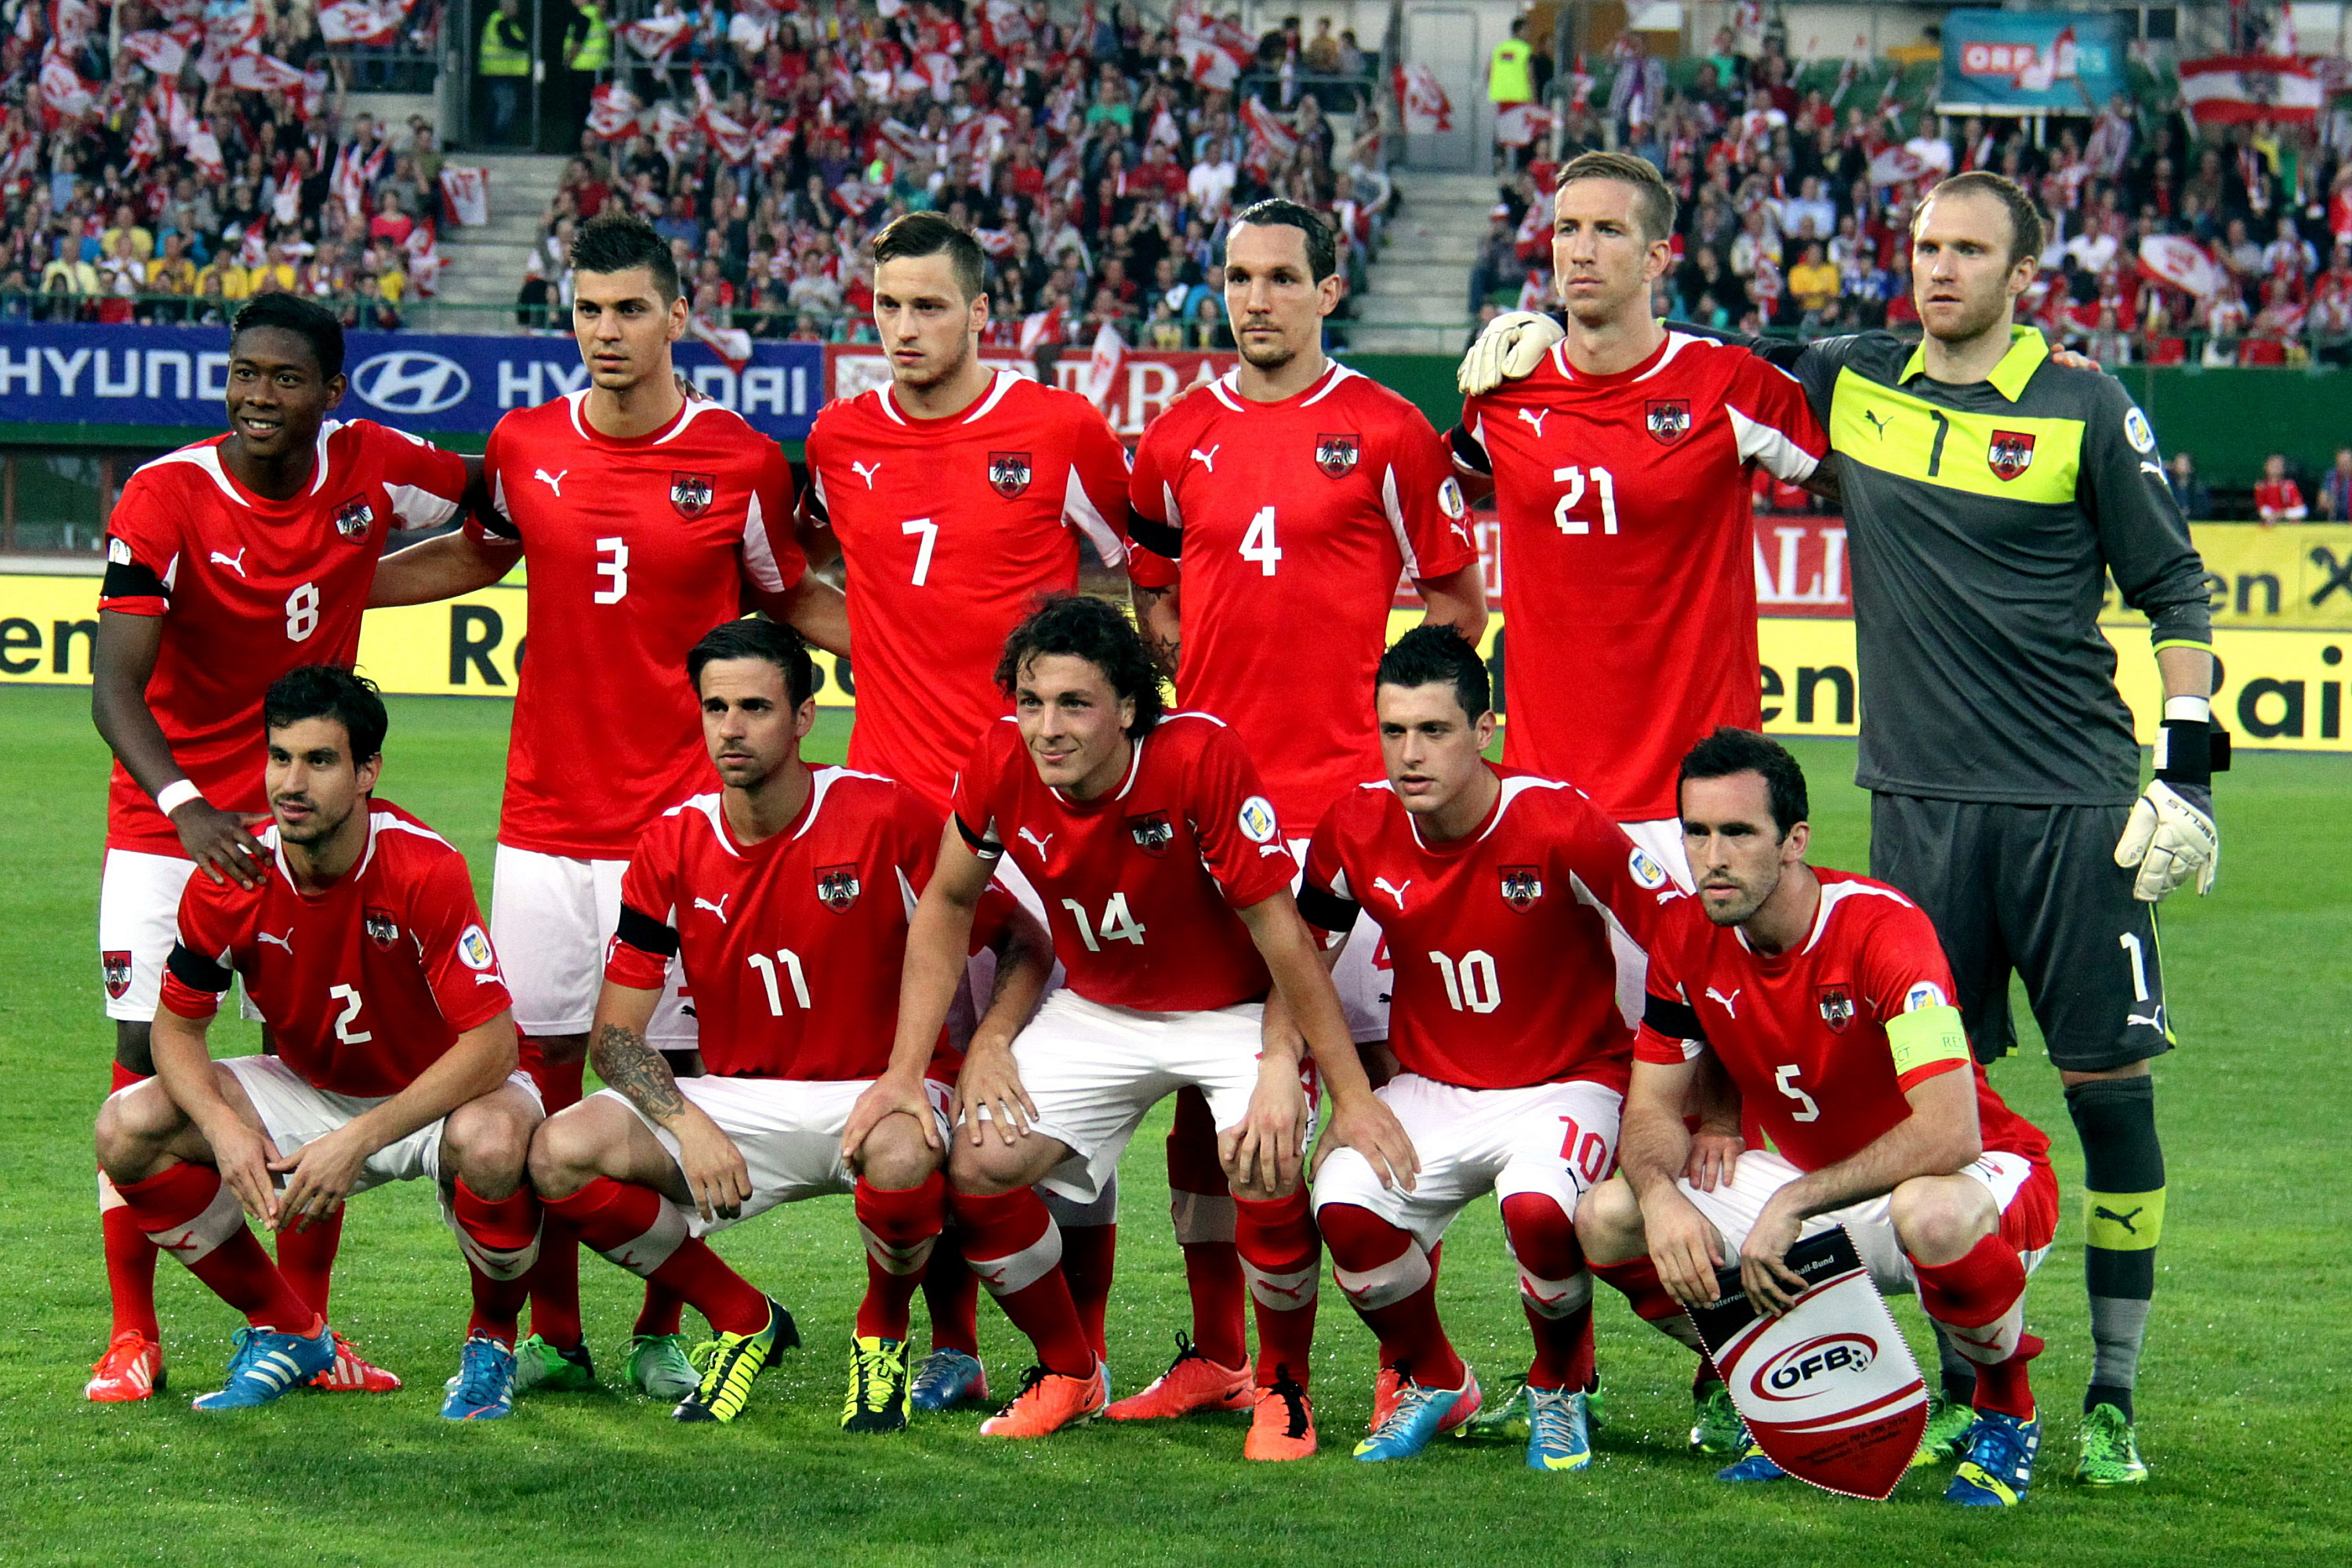 FIFA_World_Cup-qualification_2014_-_Austria_vs_Sweden_2013-06-07_(001)